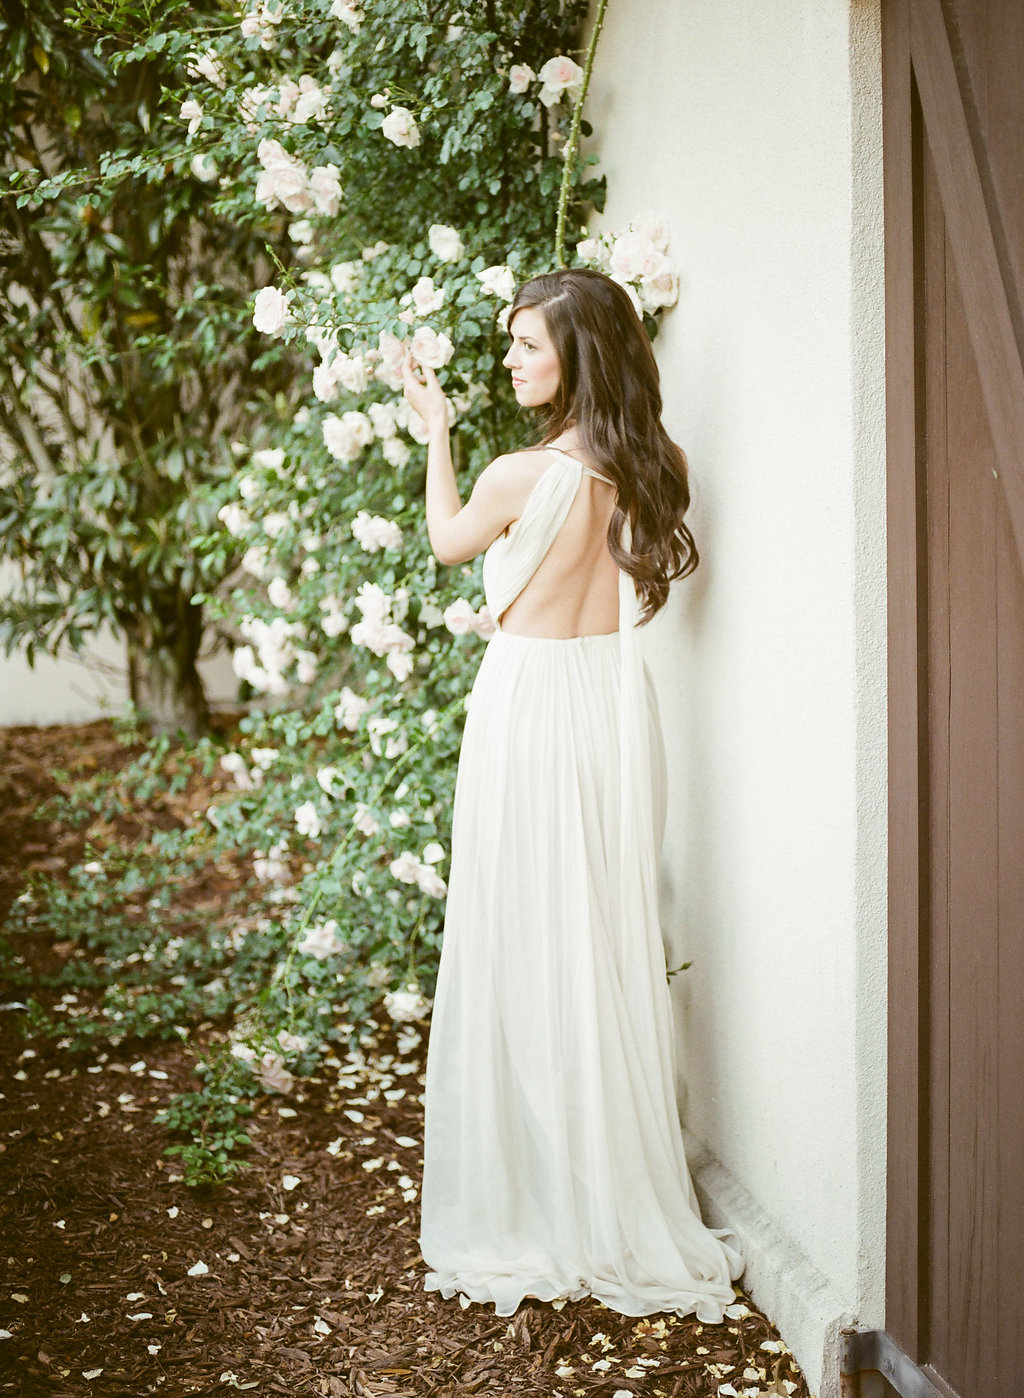 Belle Lumiere Workshop Bridal Editorial | Esther Funk Photography | Joy Wed | http://www.joy-wed.com